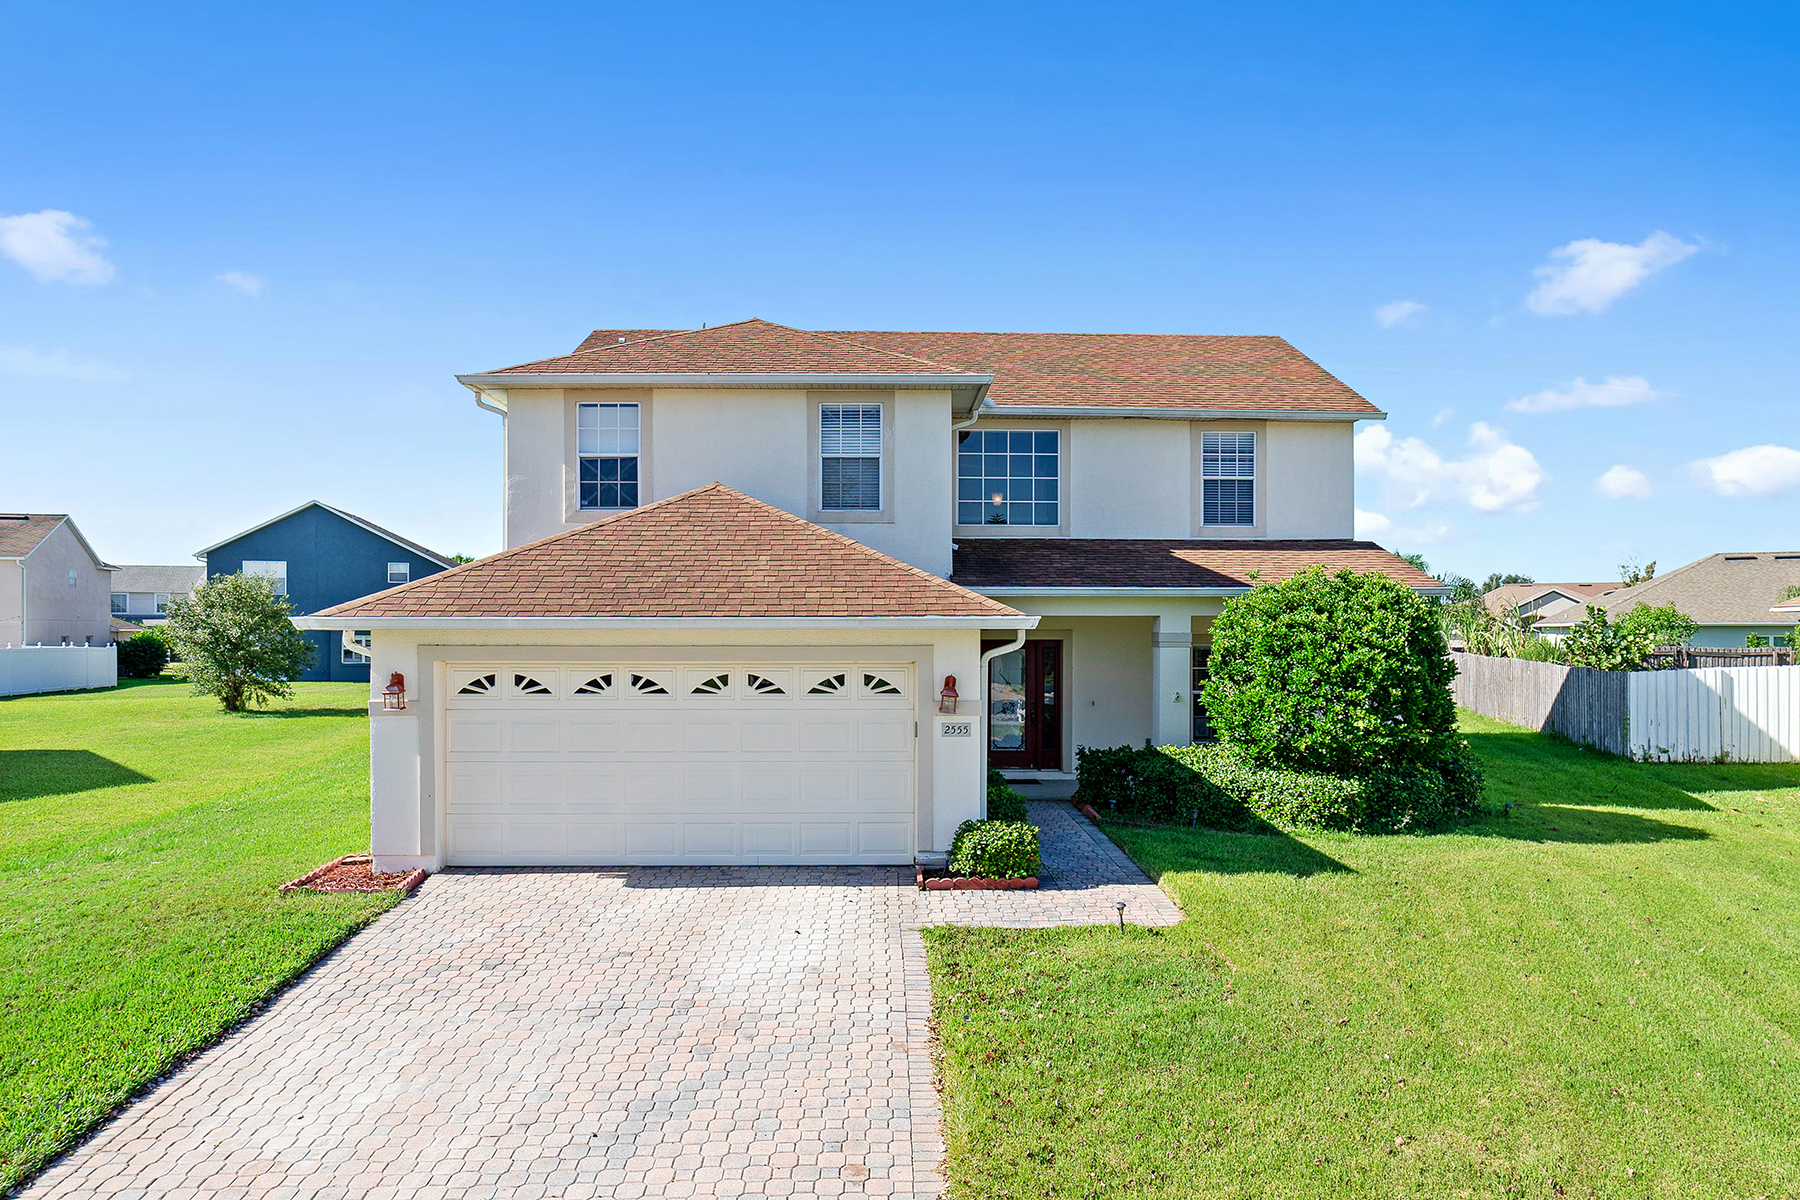 Single Family Homes for Sale at KISSIMMEE 2555 Baykal Dr Kissimmee, Florida 34746 United States